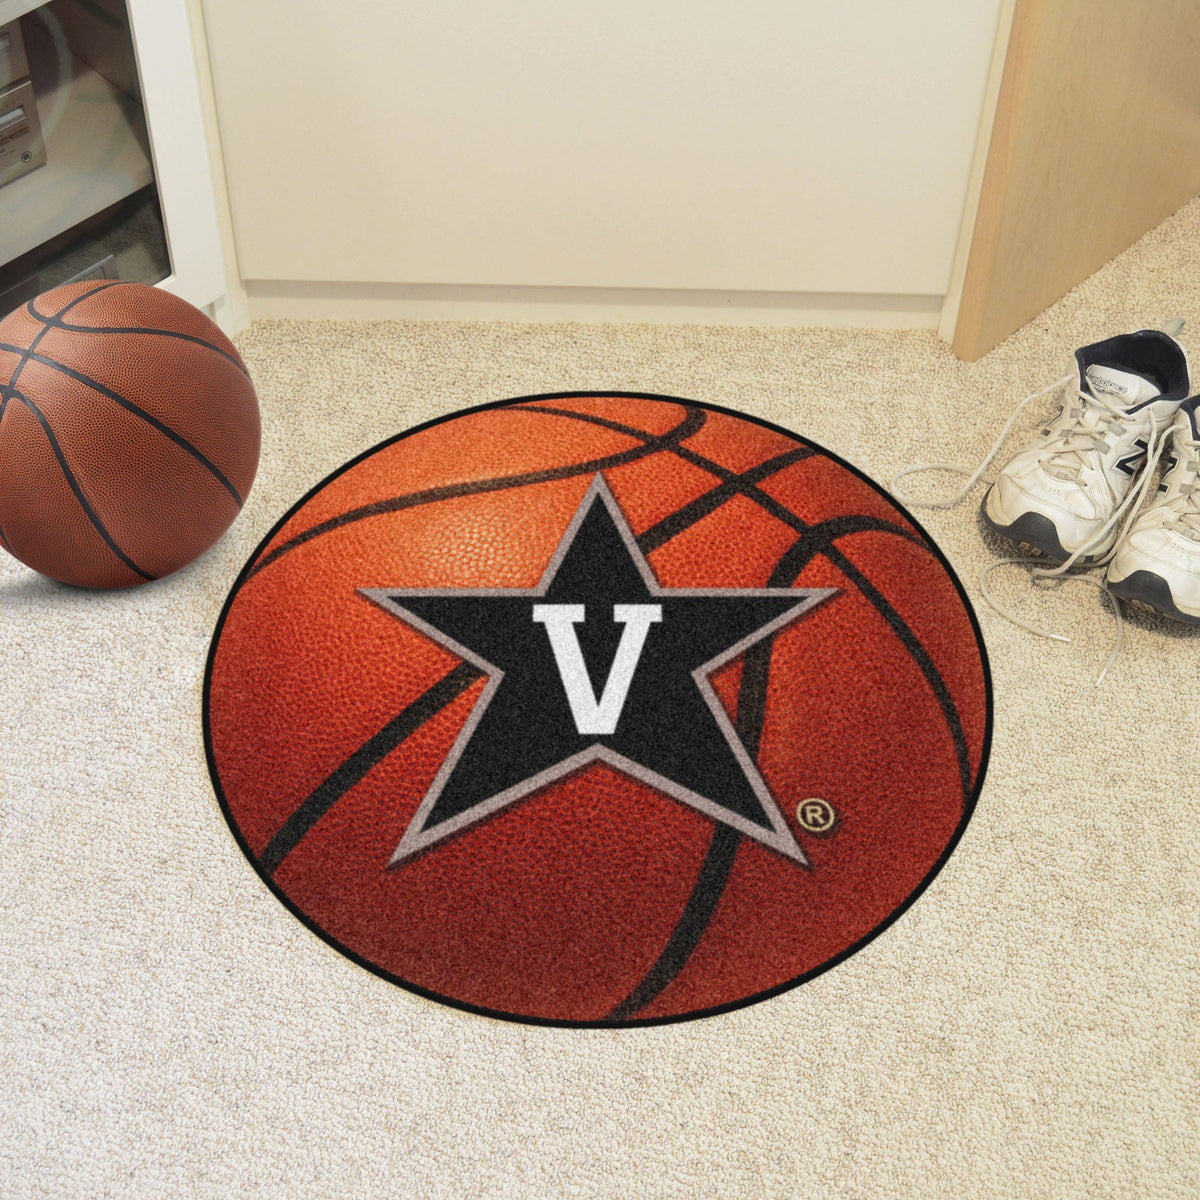 Collegiate - Basketball Mat: T - Z Collegiate Mats, Rectangular Mats, Basketball Mat, Collegiate, Home Fan Mats Vanderbilt